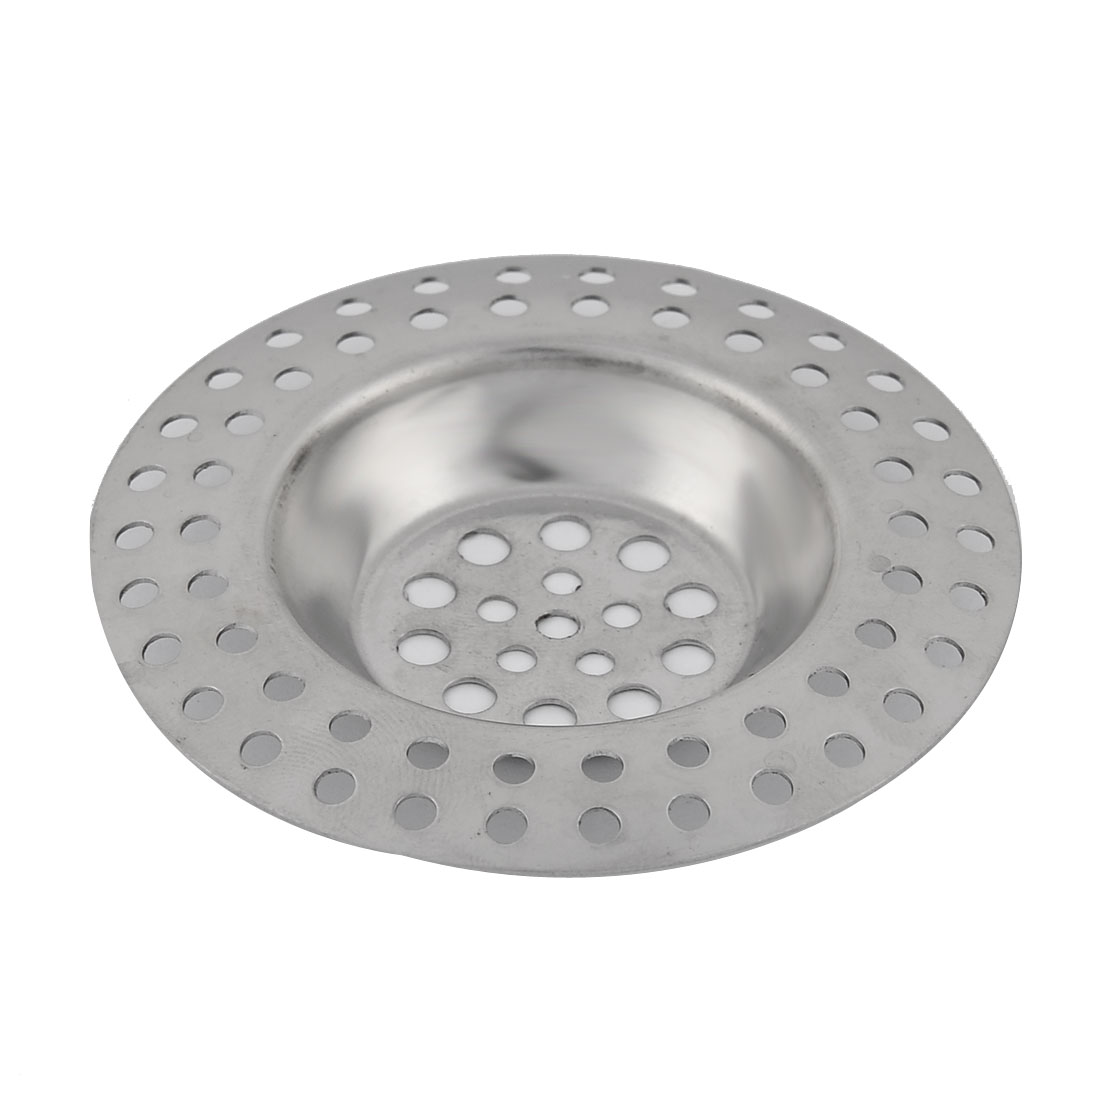 Home Bathroom Kitchen Metal Mesh Basket Sink Basin Drain Strainer Filter